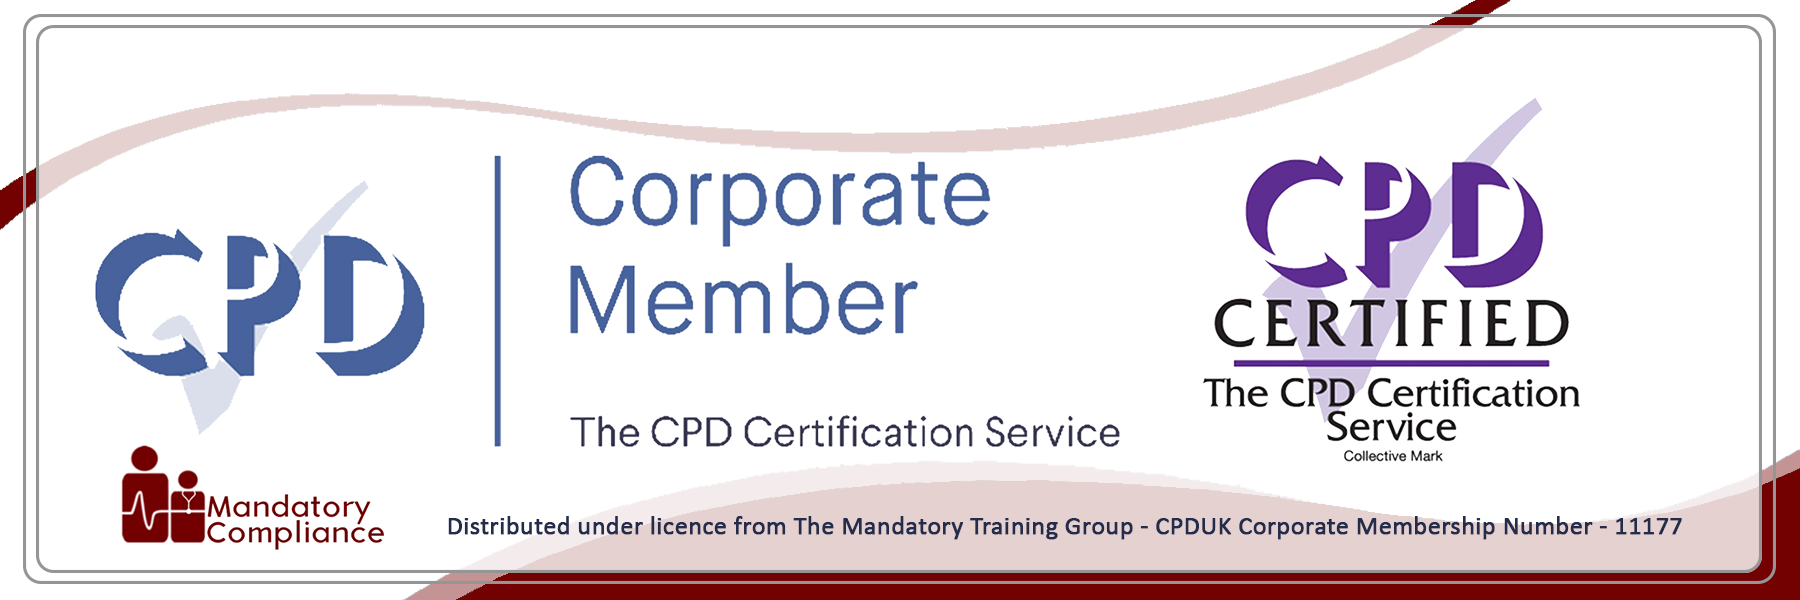 Collaborative Business Writing - Online Training Course - CPDUK Accredited - Mandatory Compliance UK -